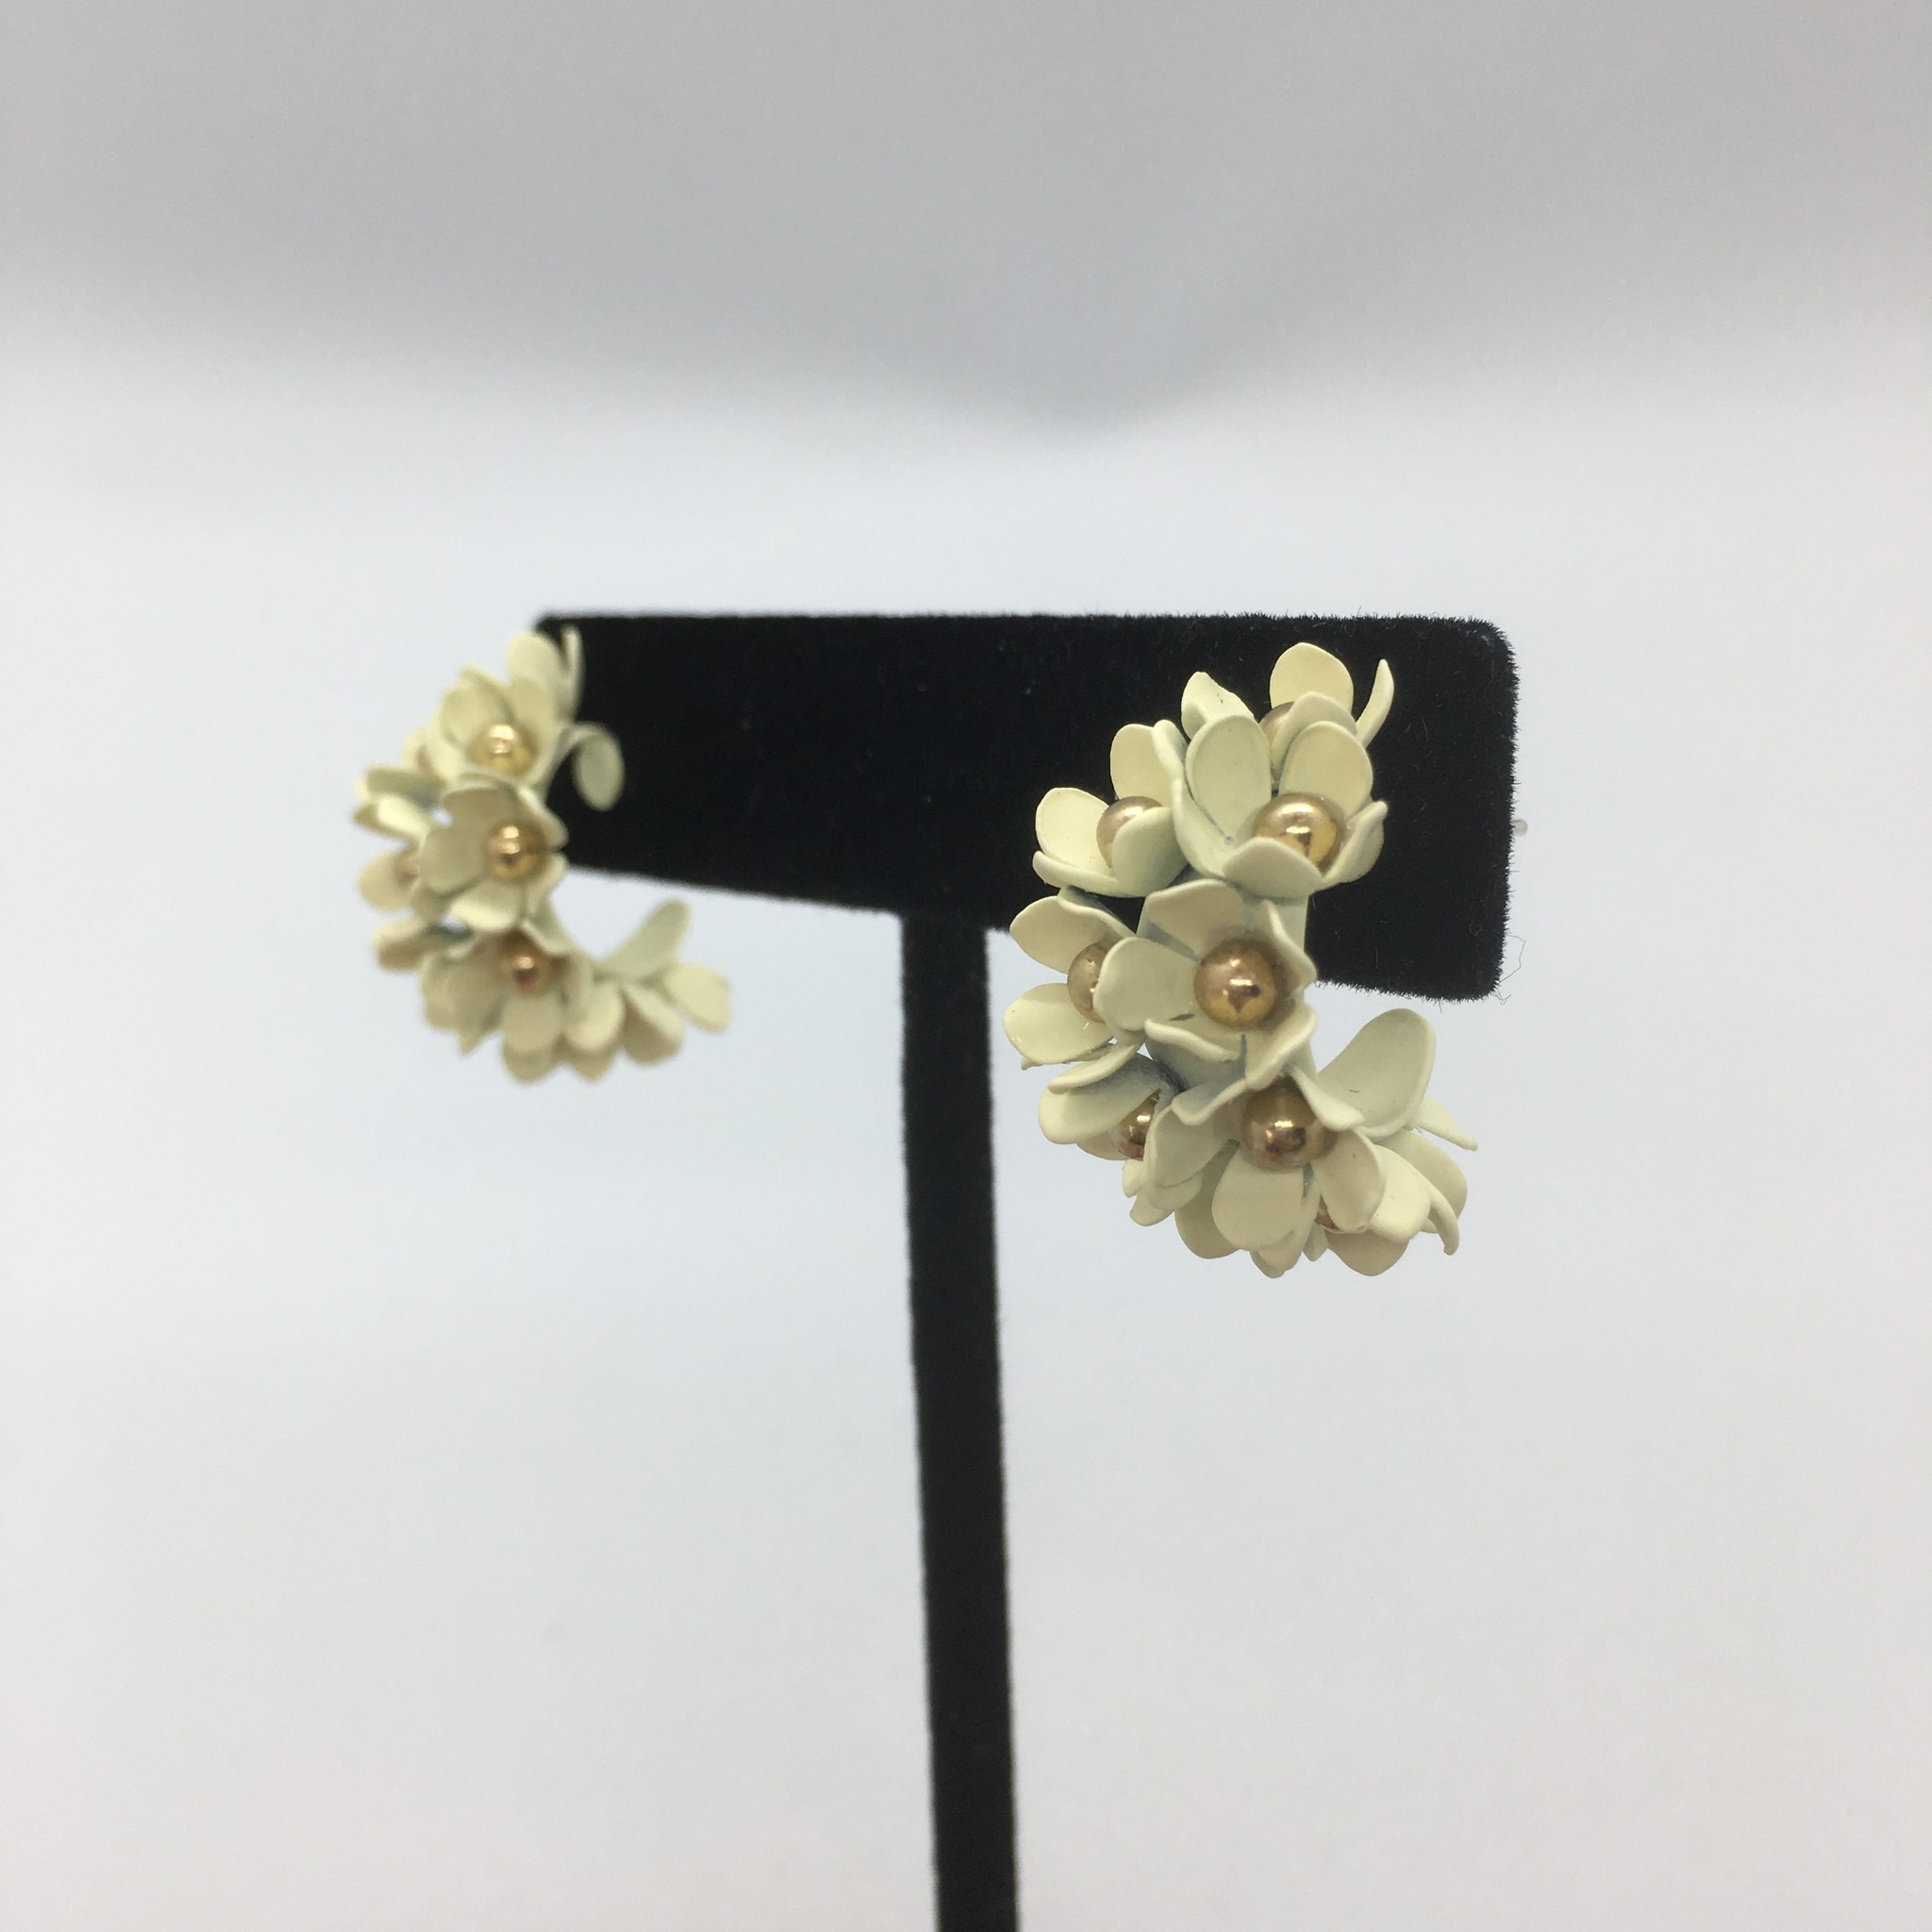 Sooley Designs Floral Cluster Hoops